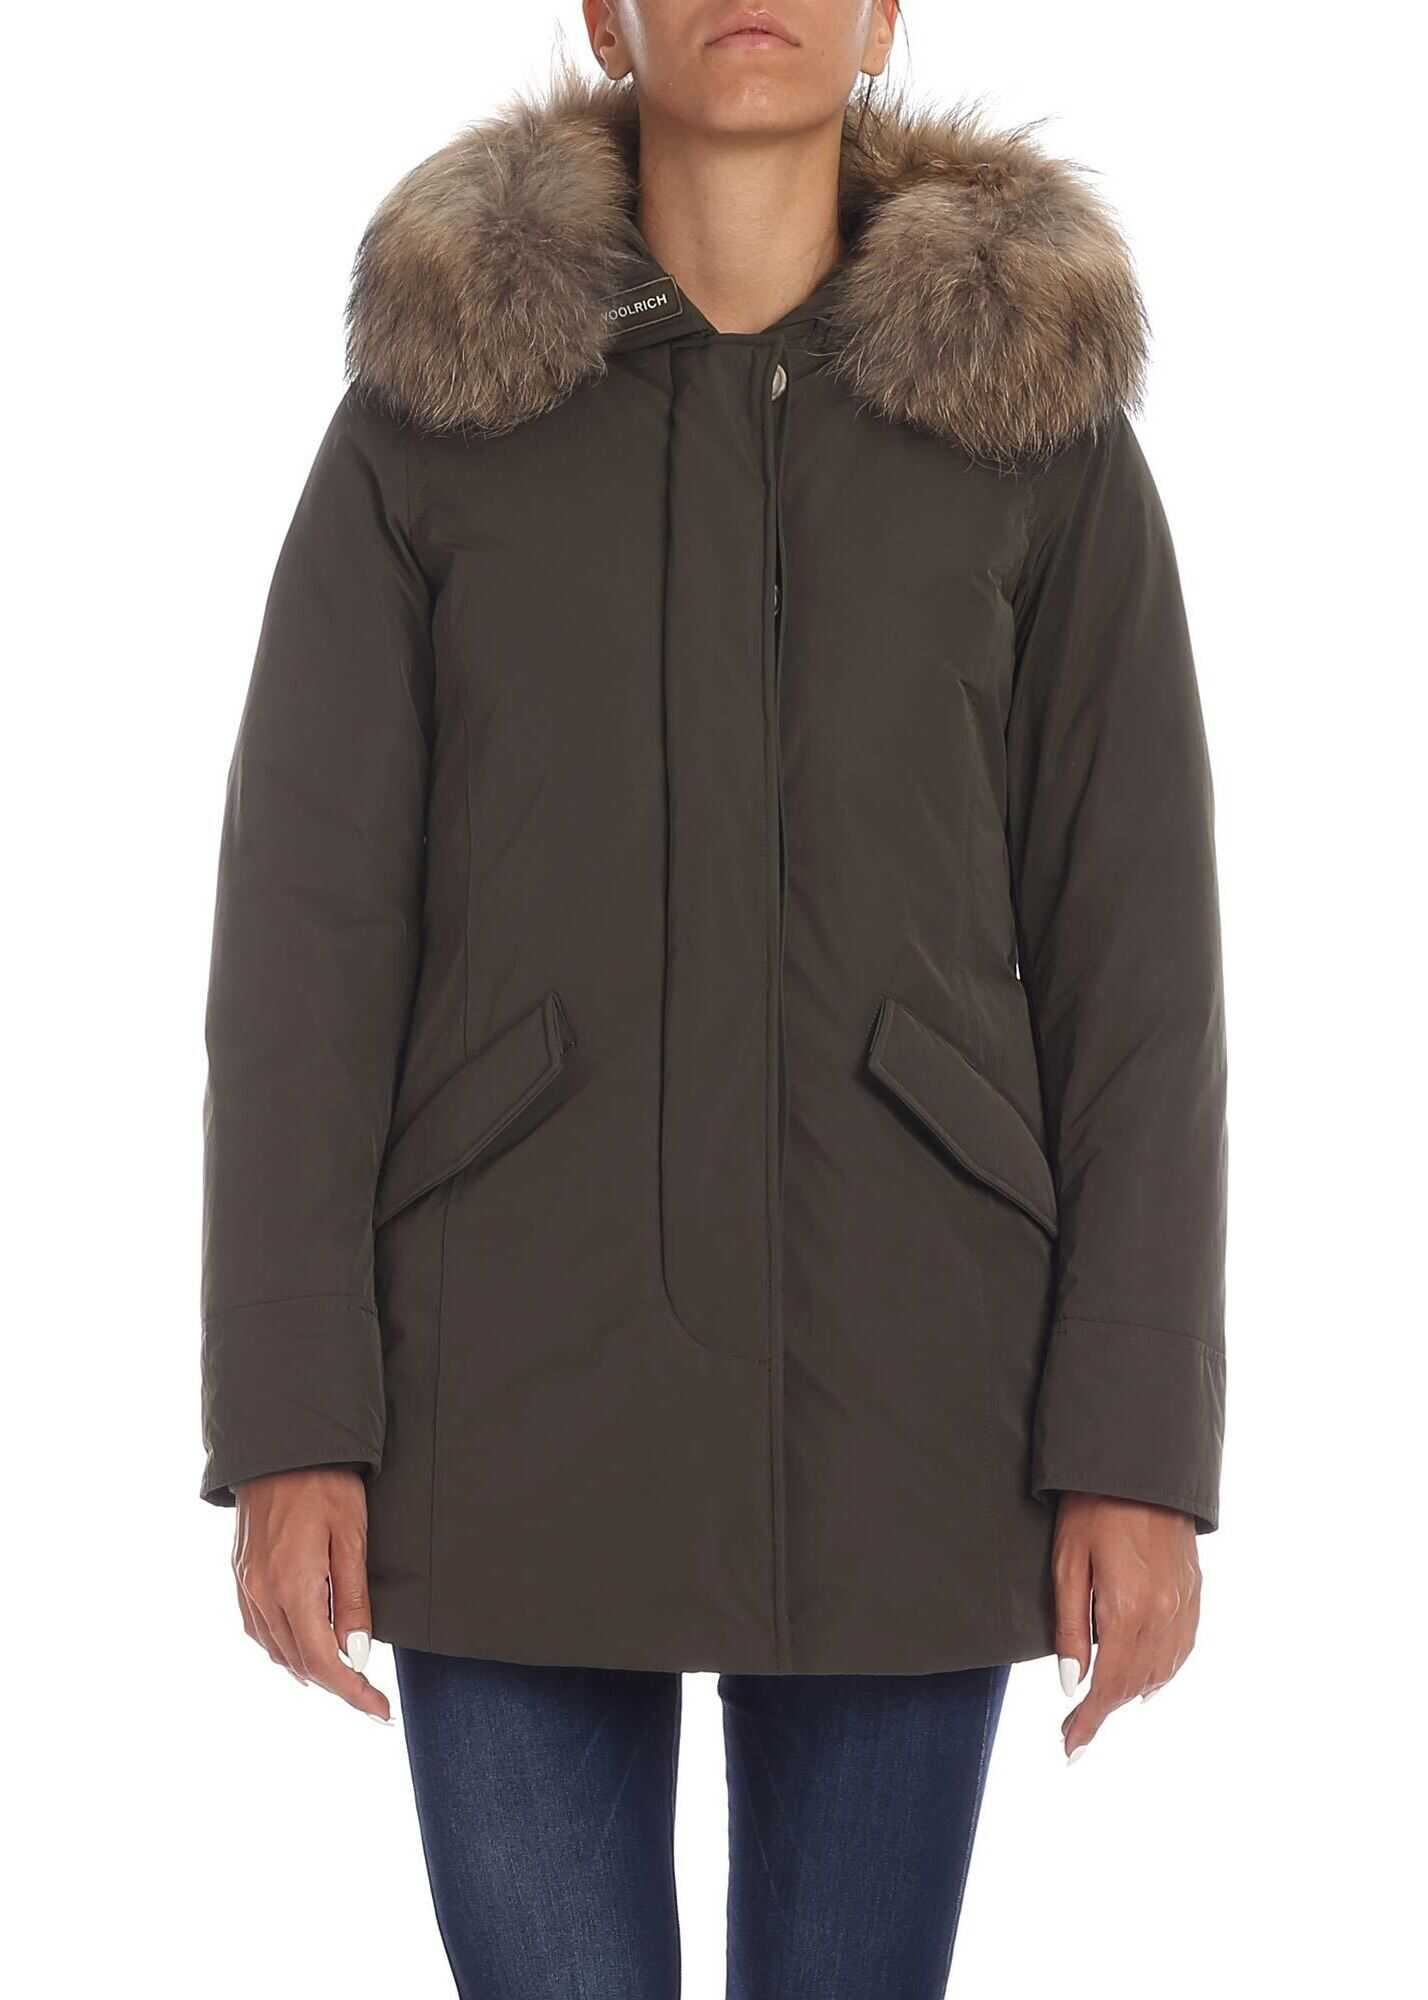 Woolrich Arctic Luxury Parka Jacket In Army Green Green